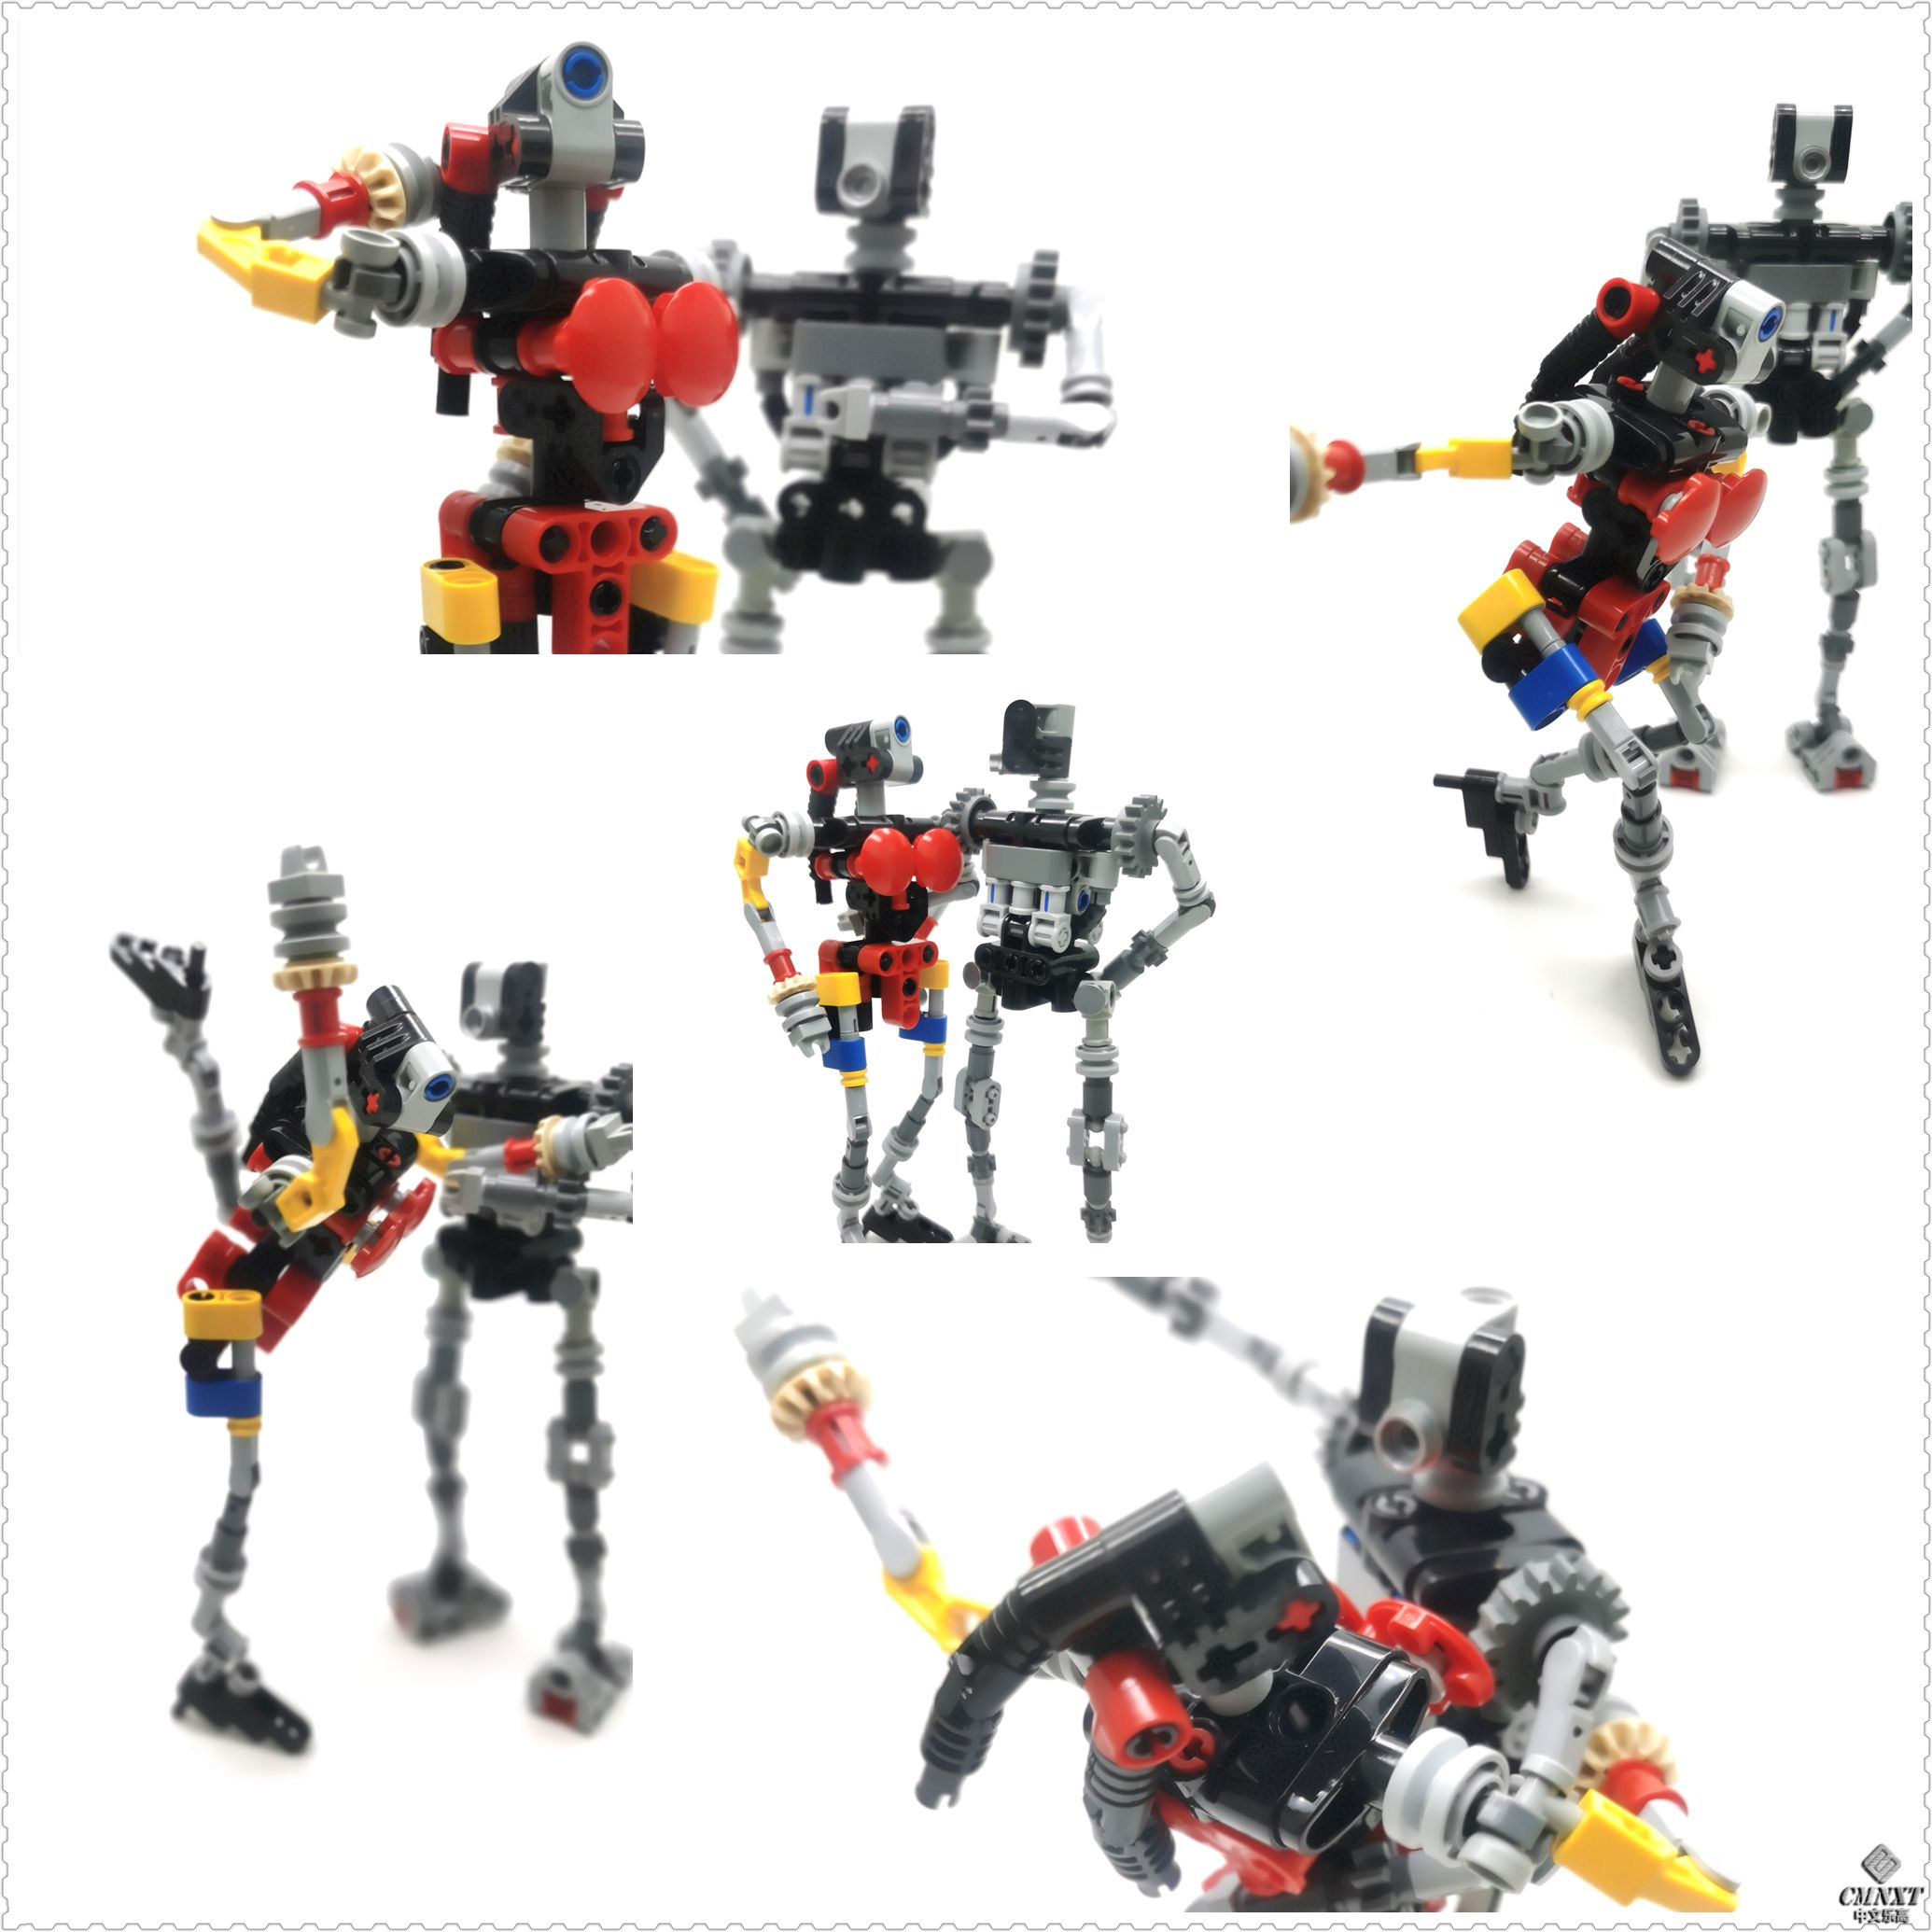 LEGO MOC 科技件大人仔 Large size technical figures conso 01.jpg